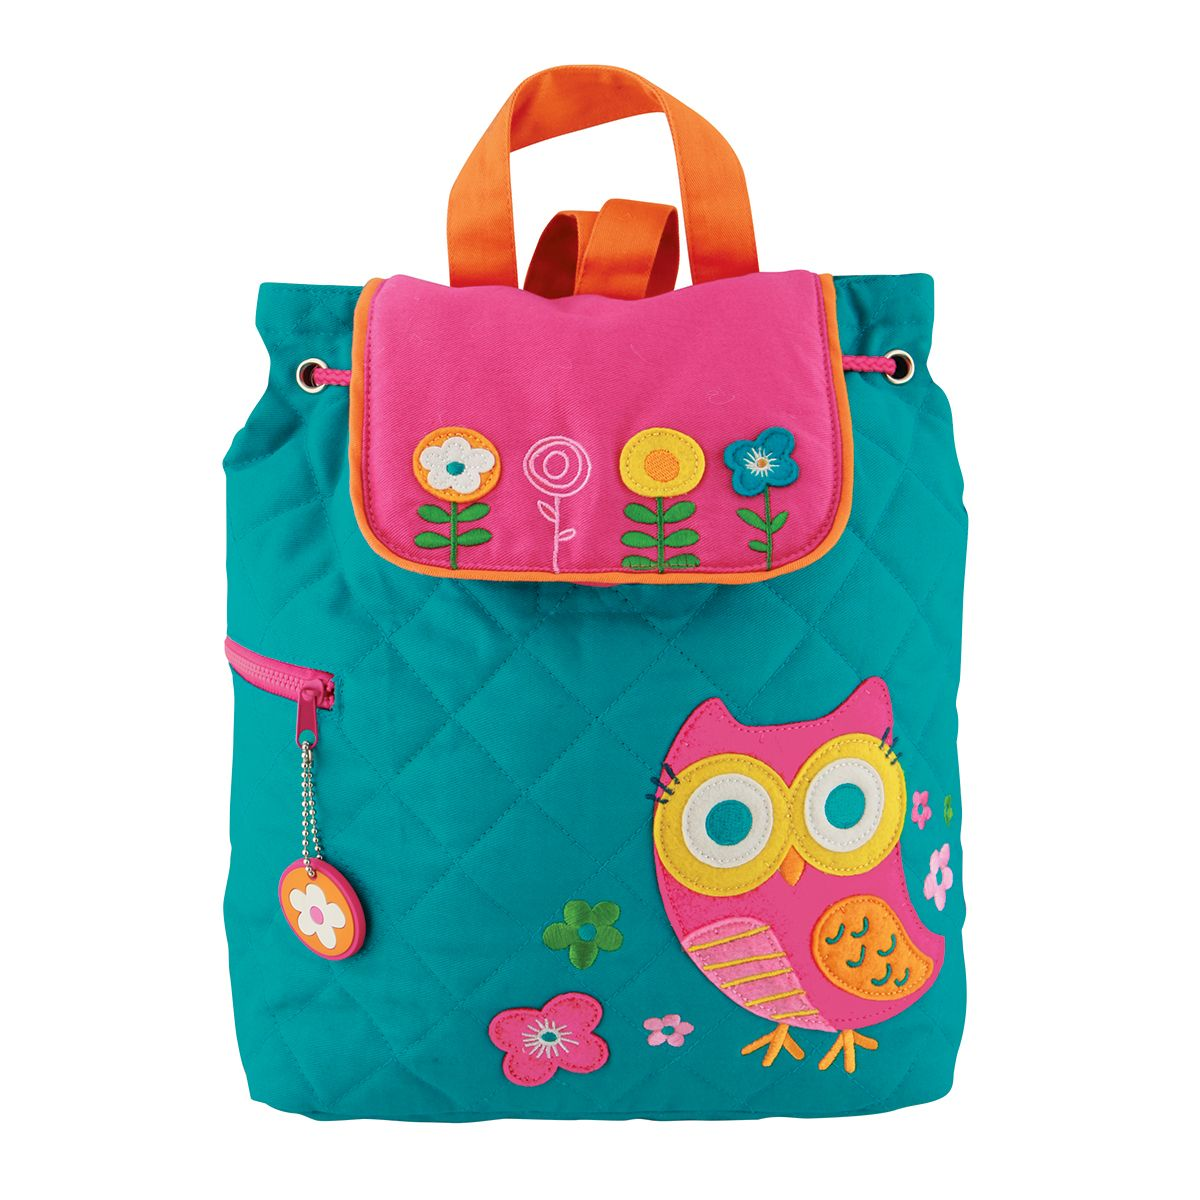 Cute Kids Backpacks, Lunch Boxes, Purses, Beach Tote Bags and More ...